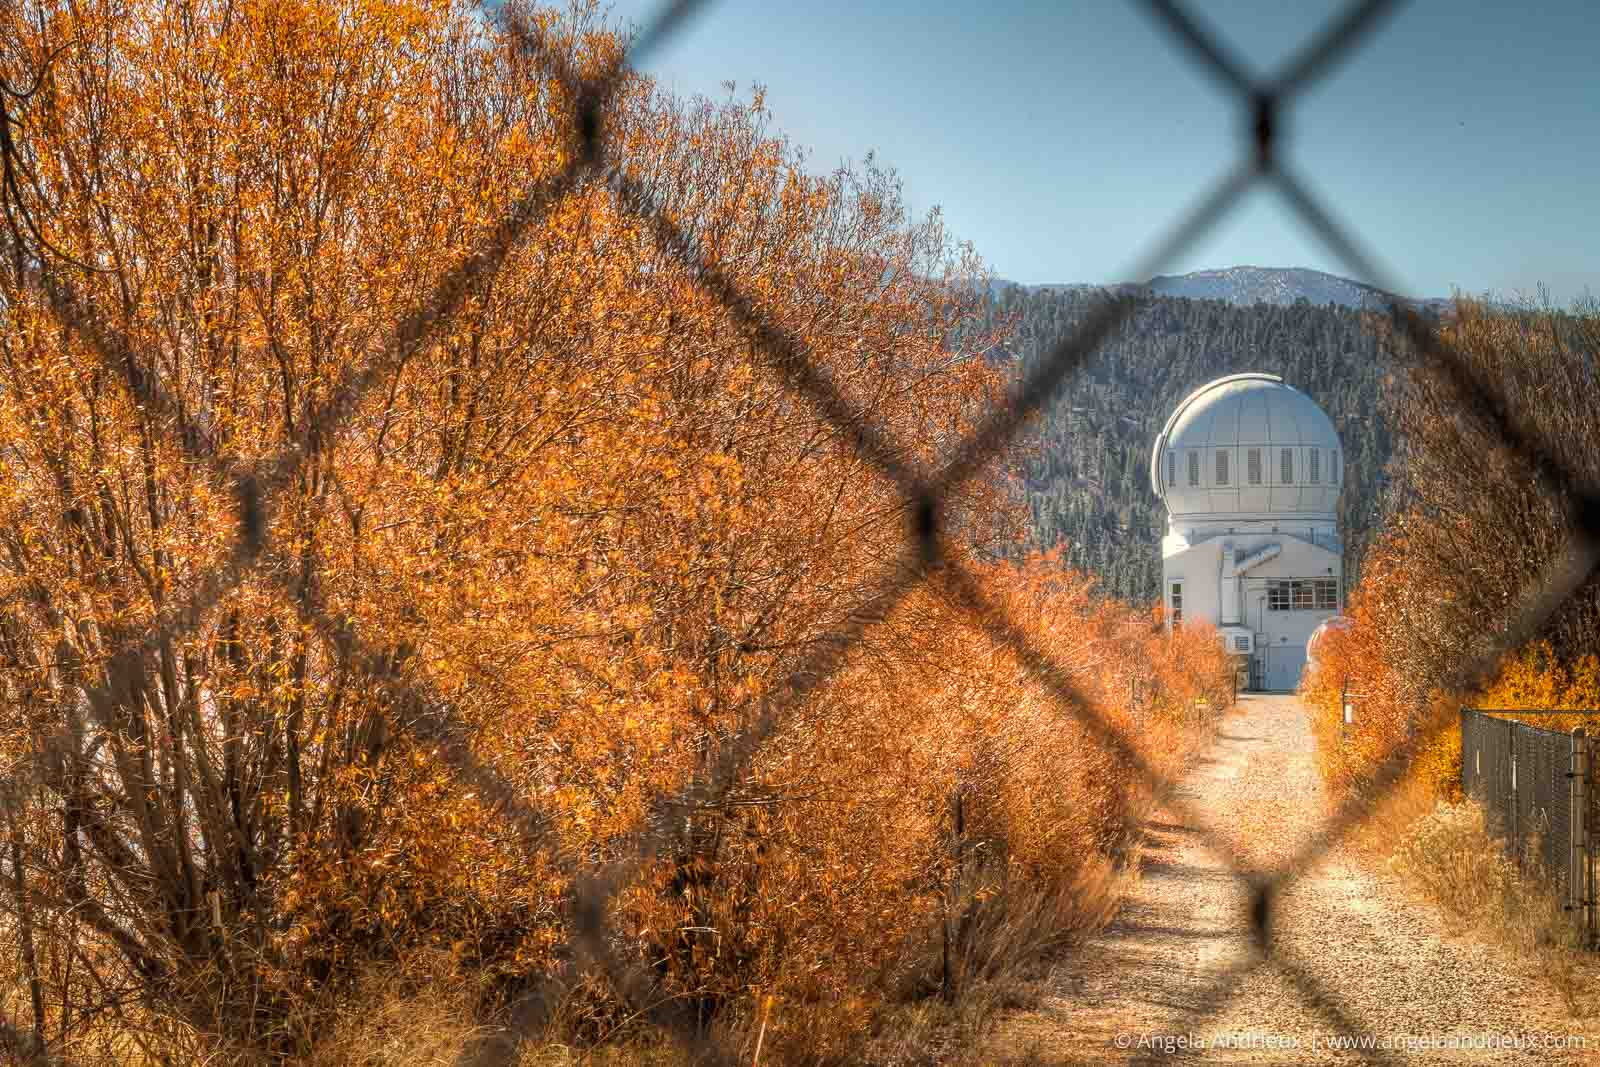 A glimpse of the Big Bear Solar Observatory through a chain link fence, surrounded by fall colors